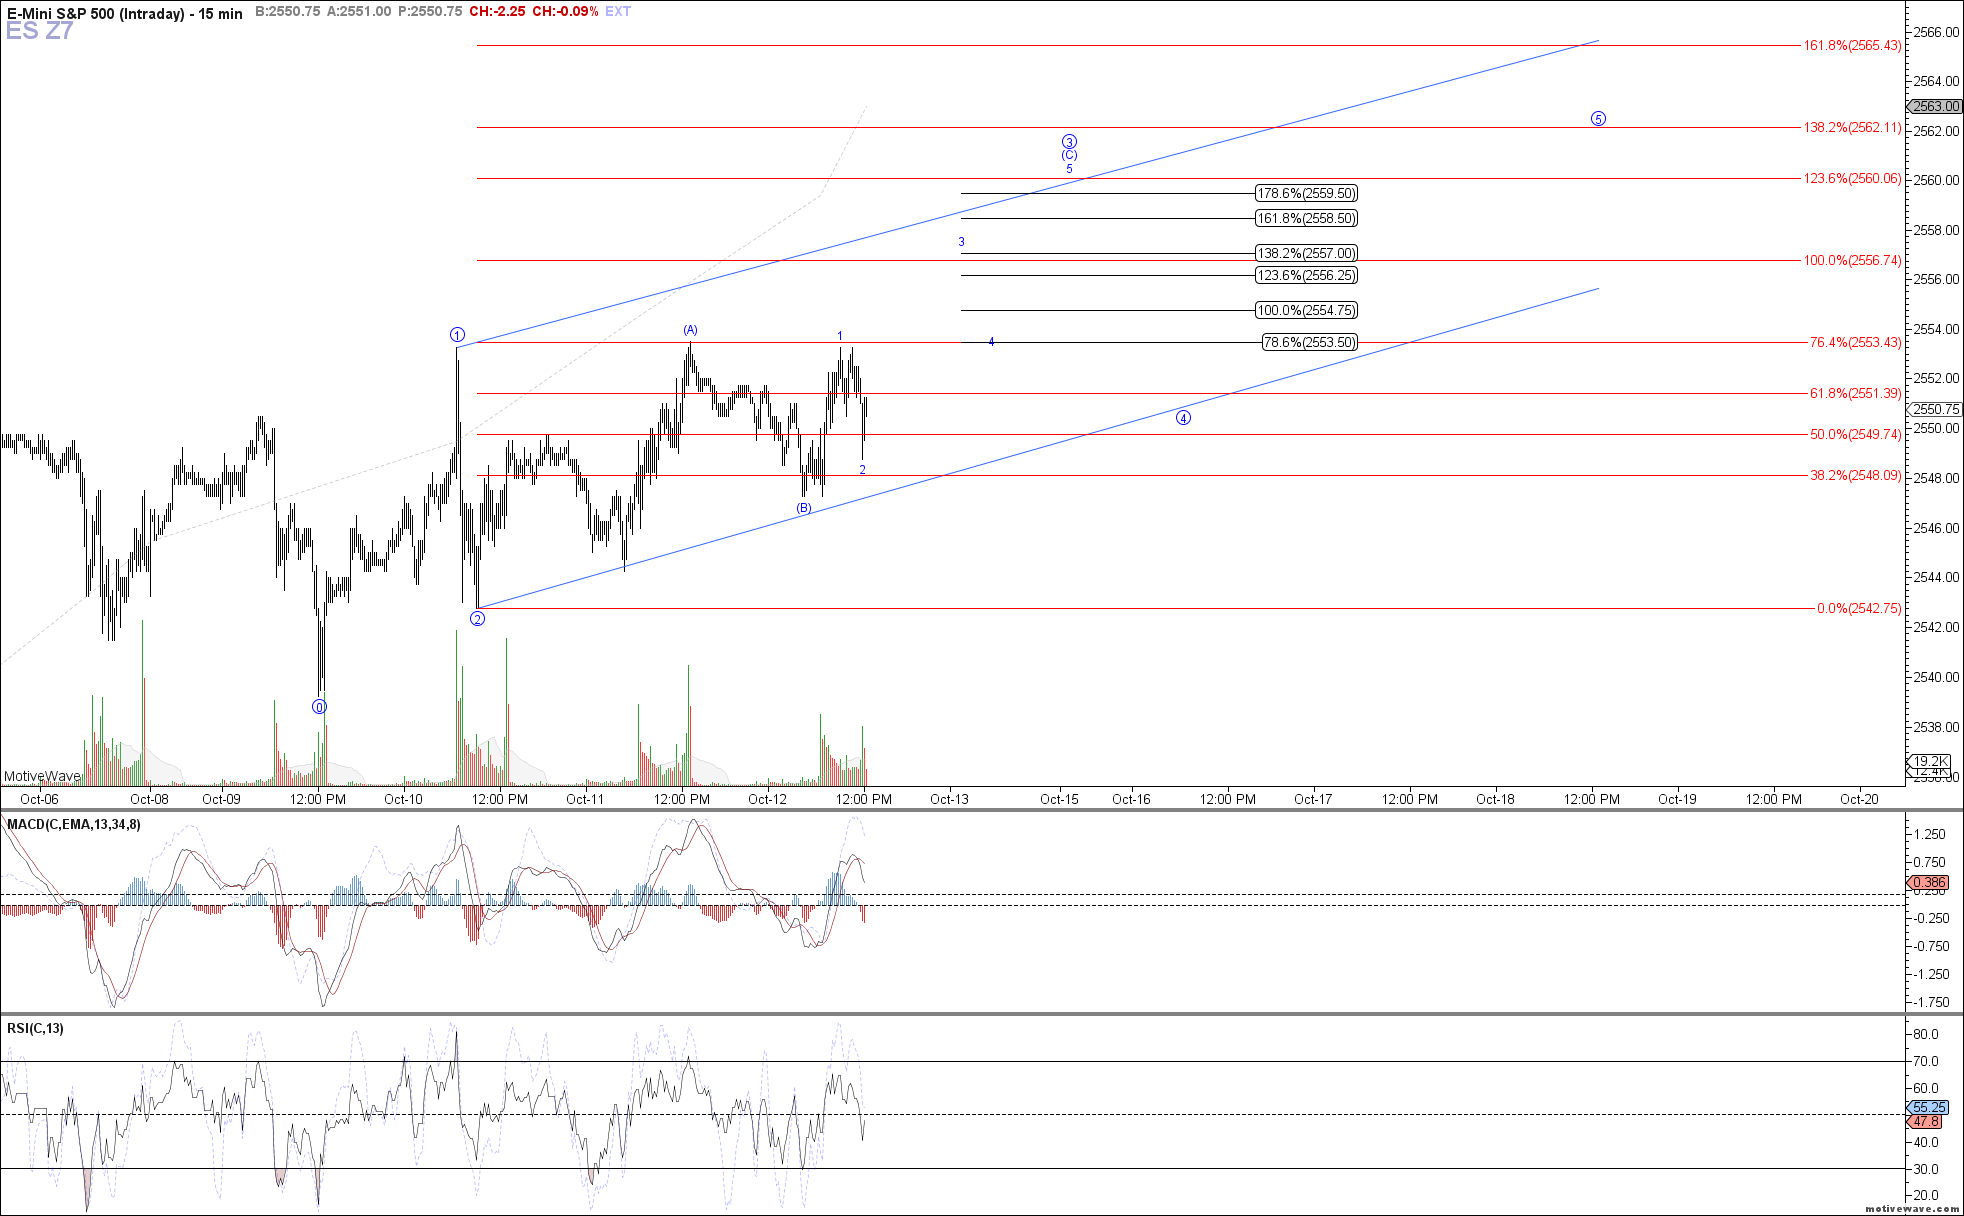 ES Z7 - Intraday - Oct-12 1225 PM (15 min)